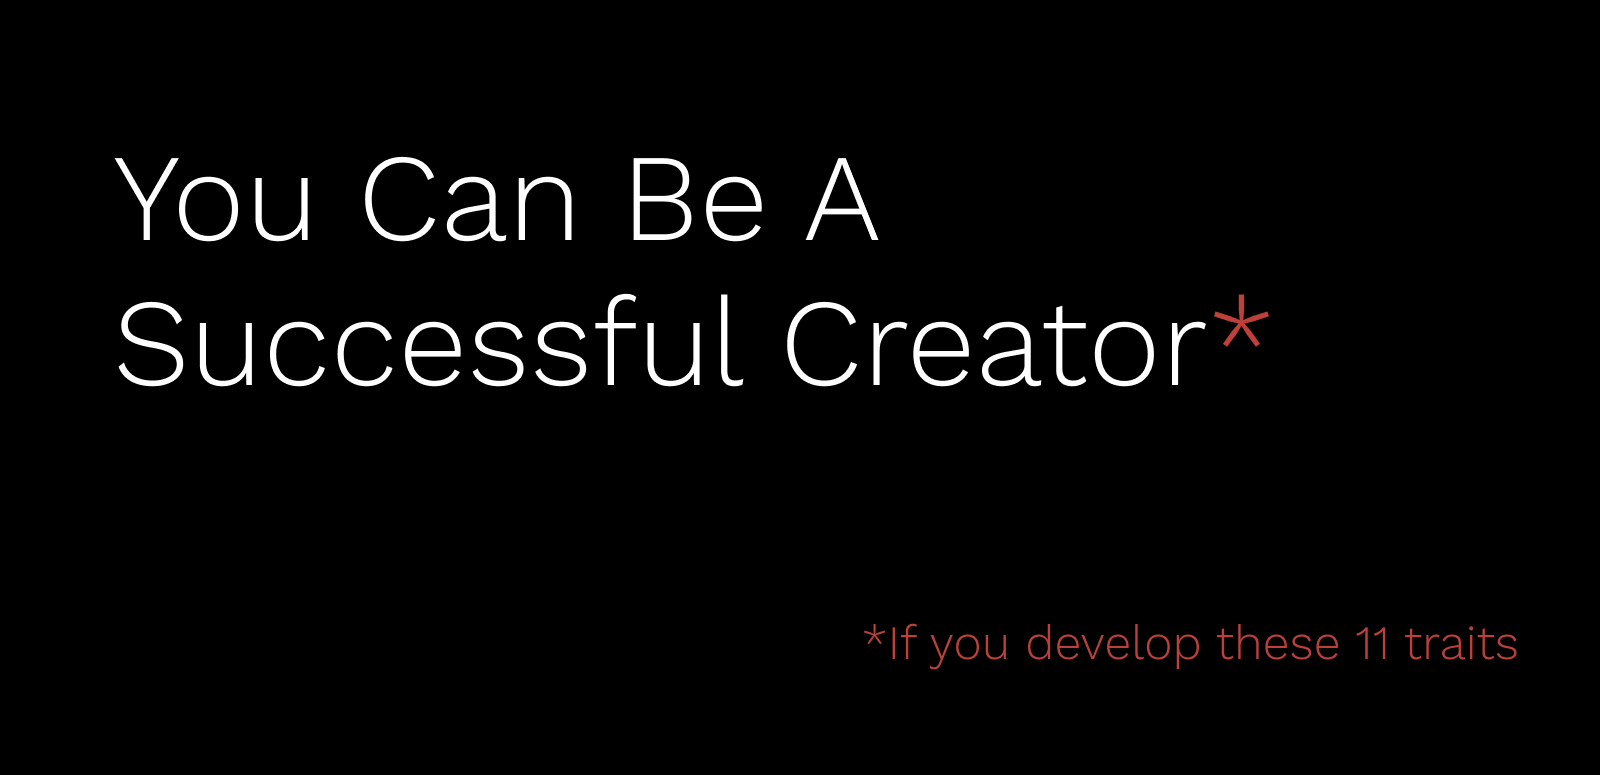 You can be a successful creator